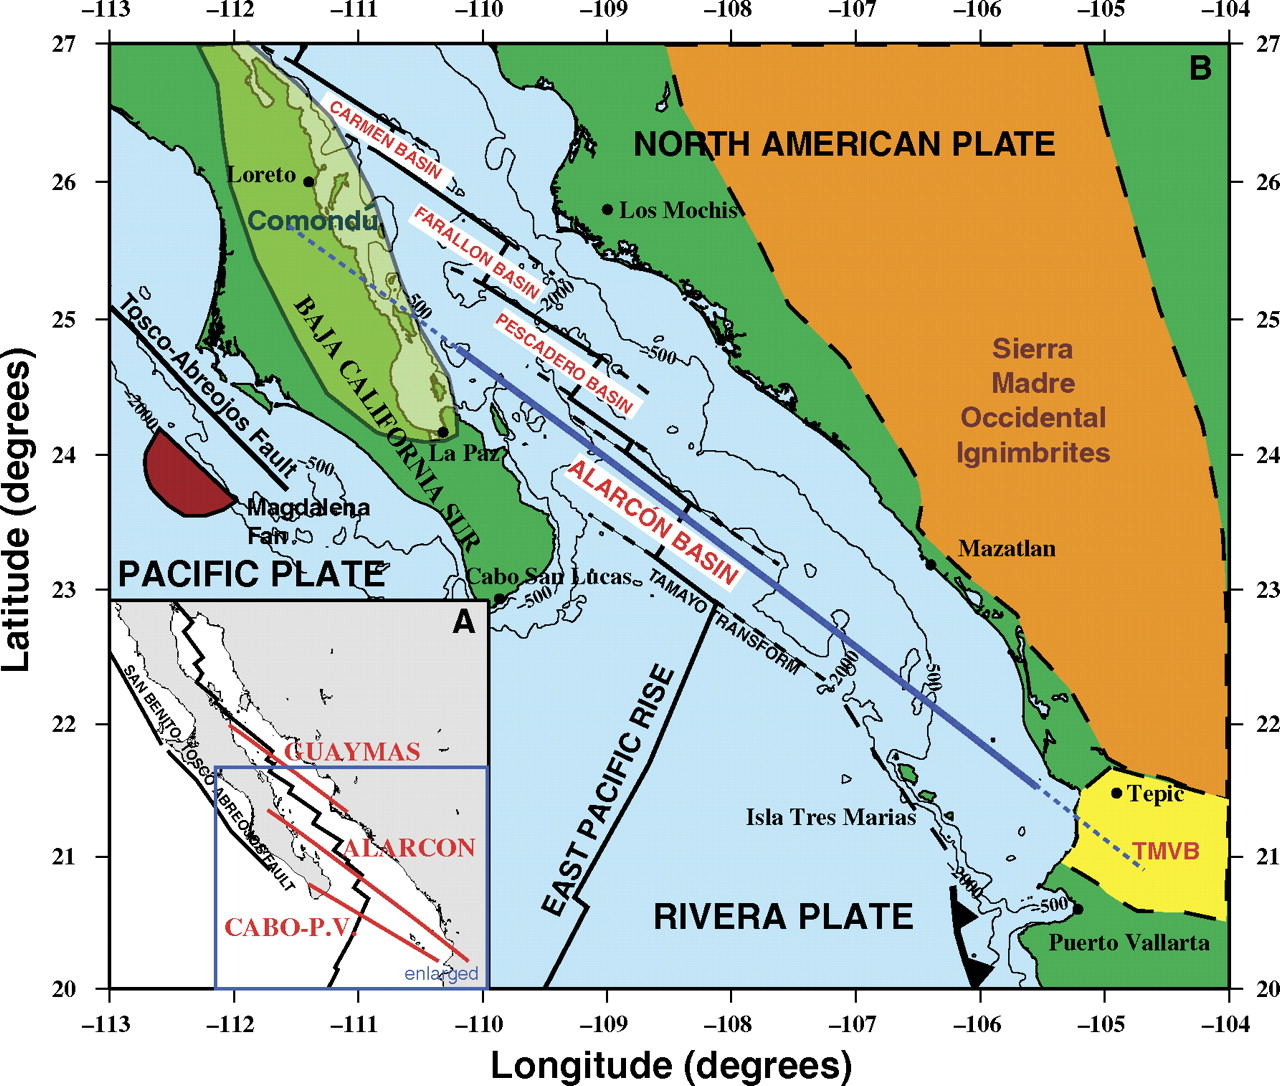 Gulf Of California Map.Gulf Of California Earthquakes First Post Jay Patton Online